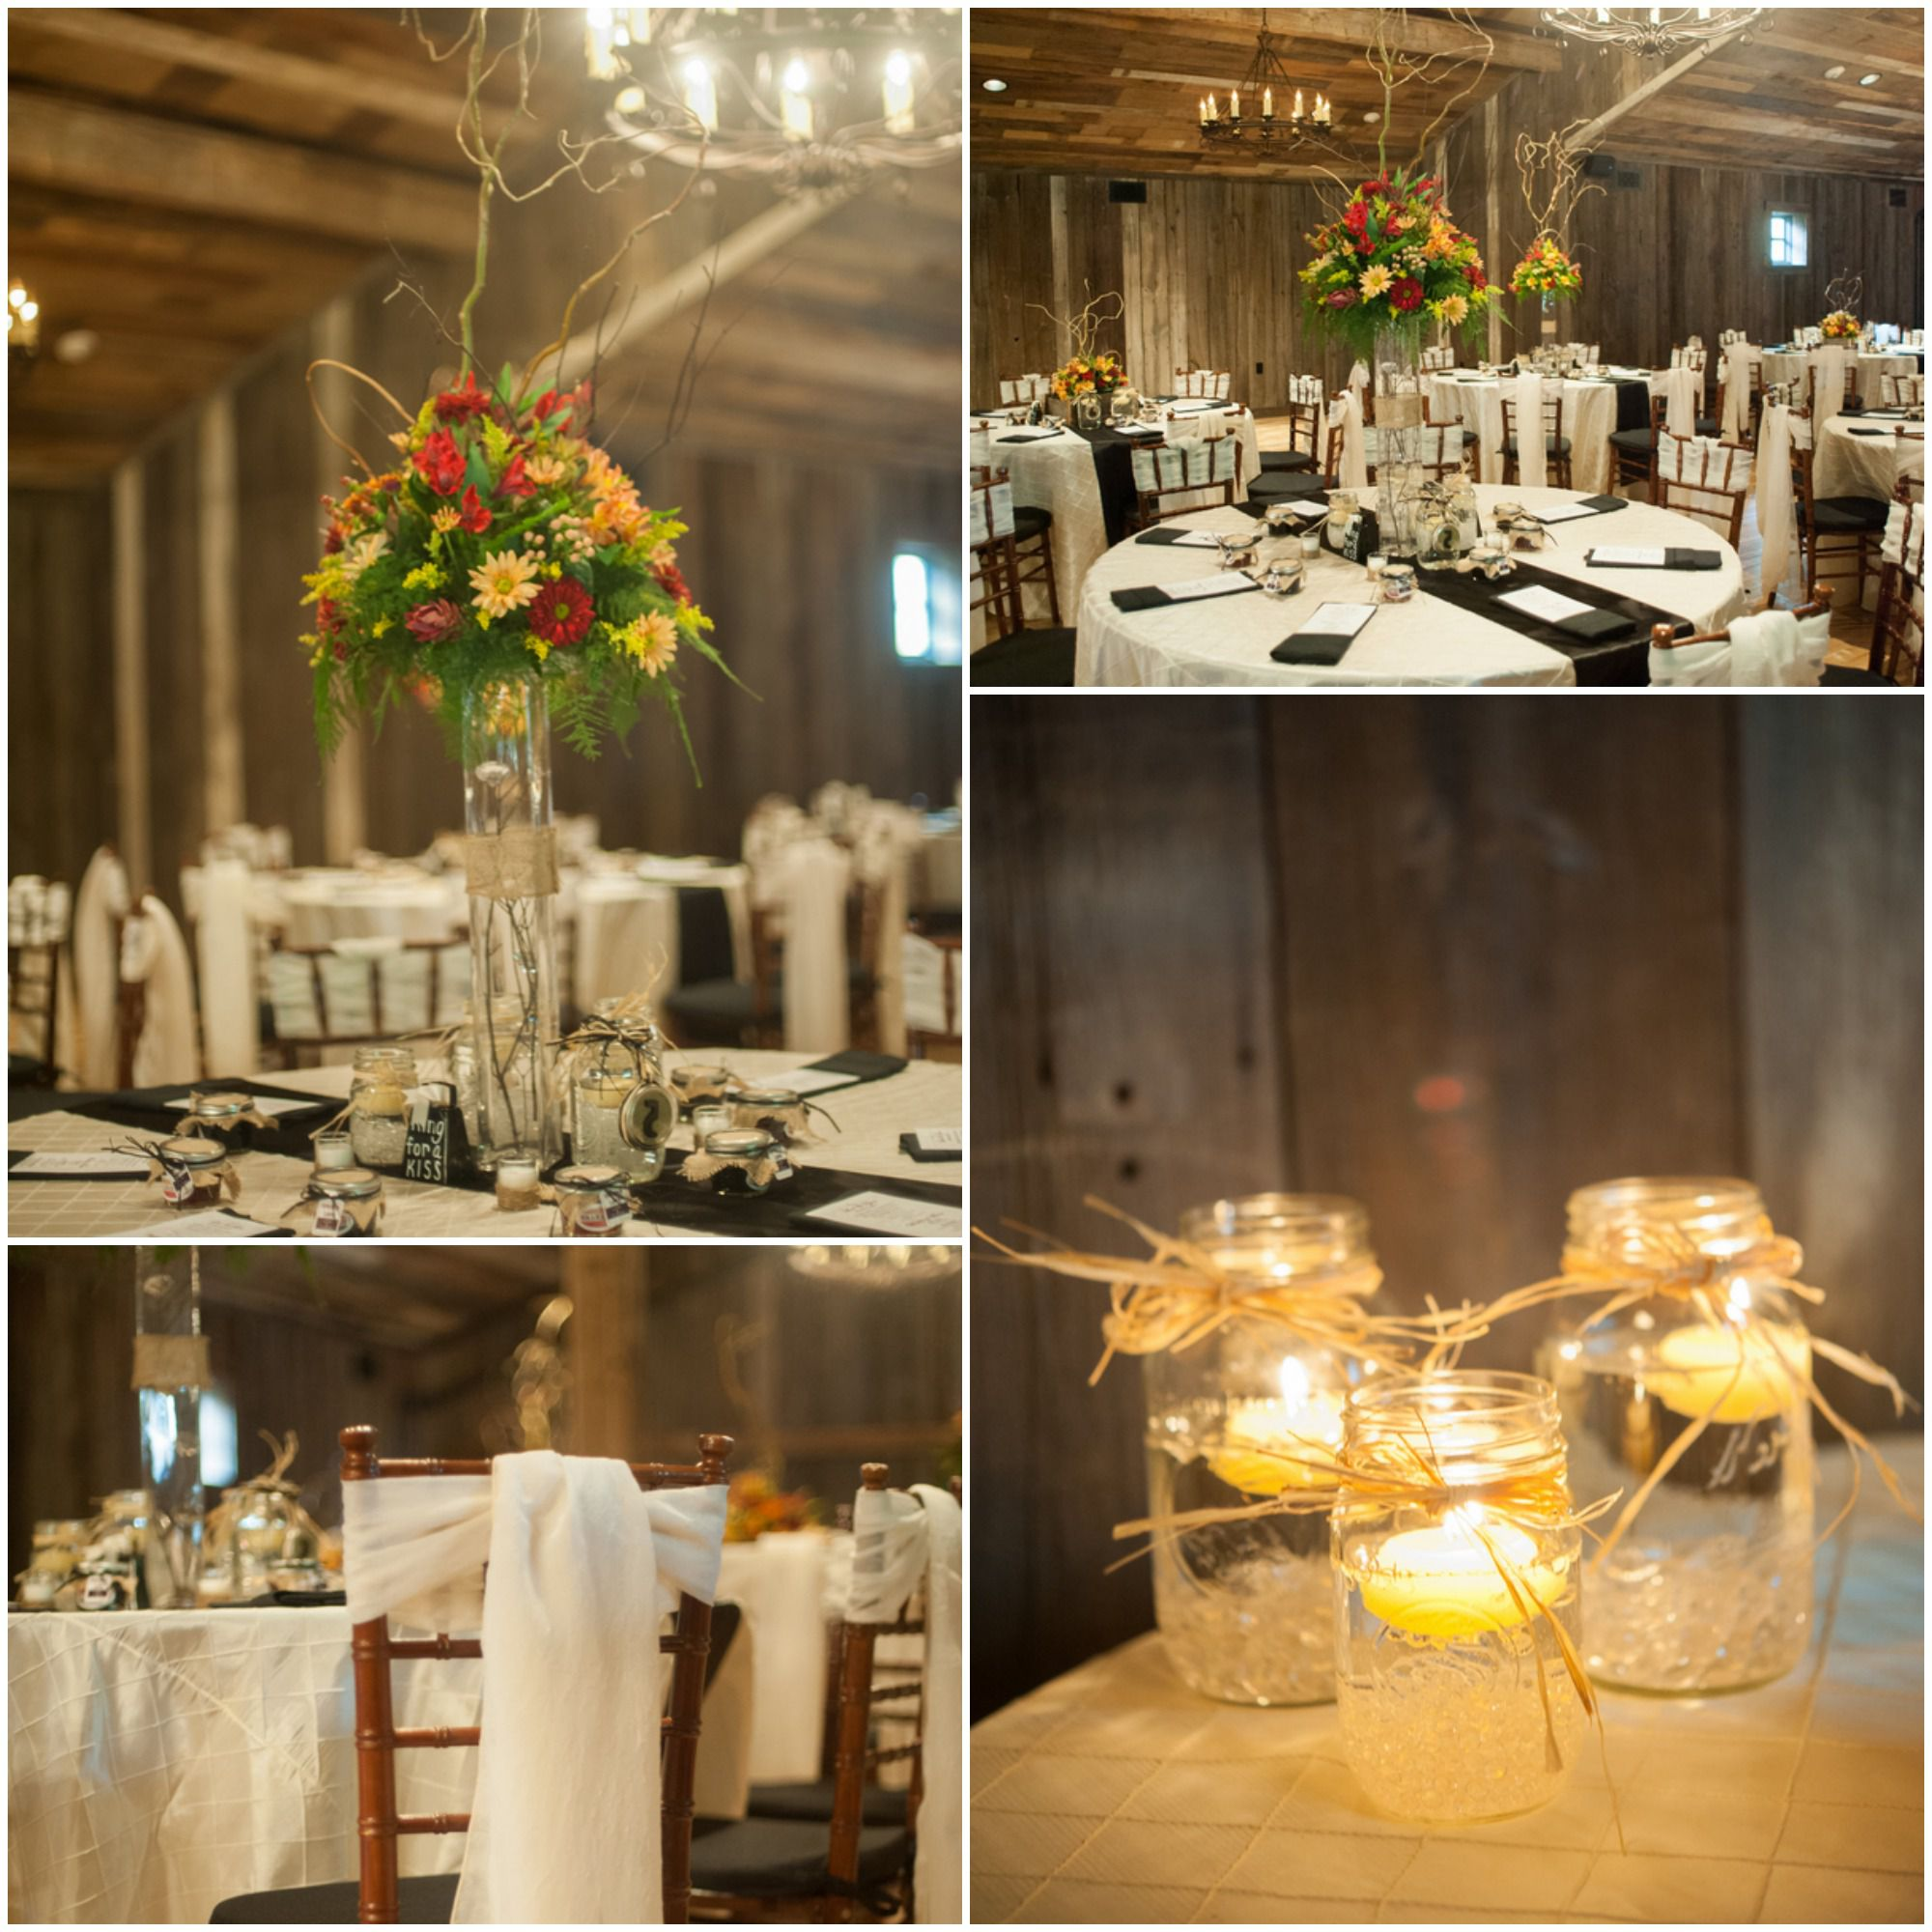 Rustic chapel wedding chic